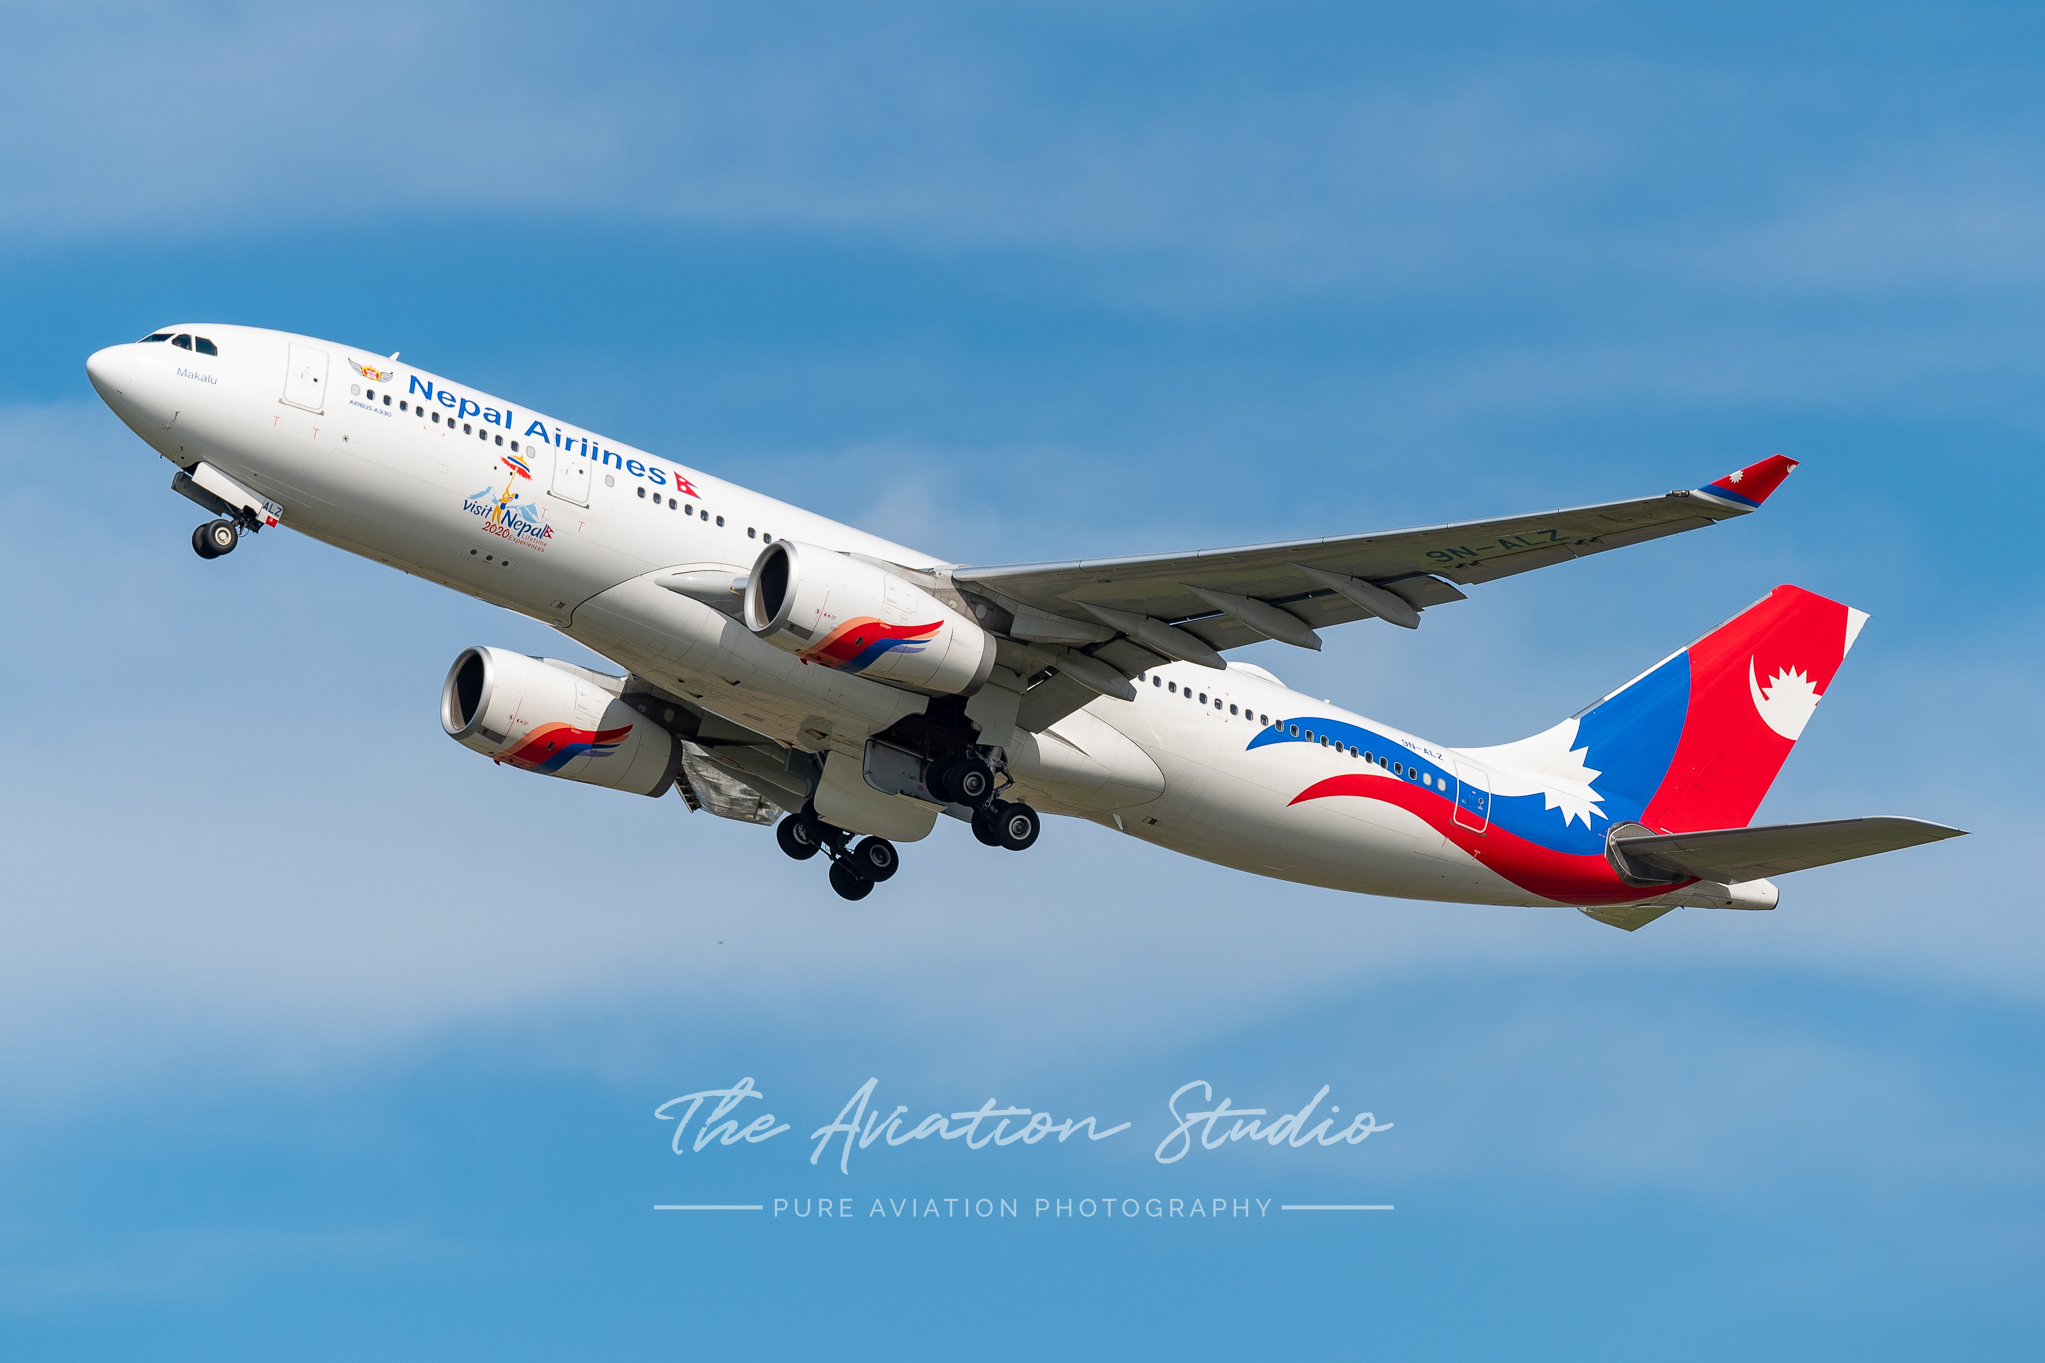 Nepal Airlines A330-200 9N-ALZ departing Brisbane for KUL as RA4132 after helping citizens come home during the COVID-19 outbreak (Image: Supplied)